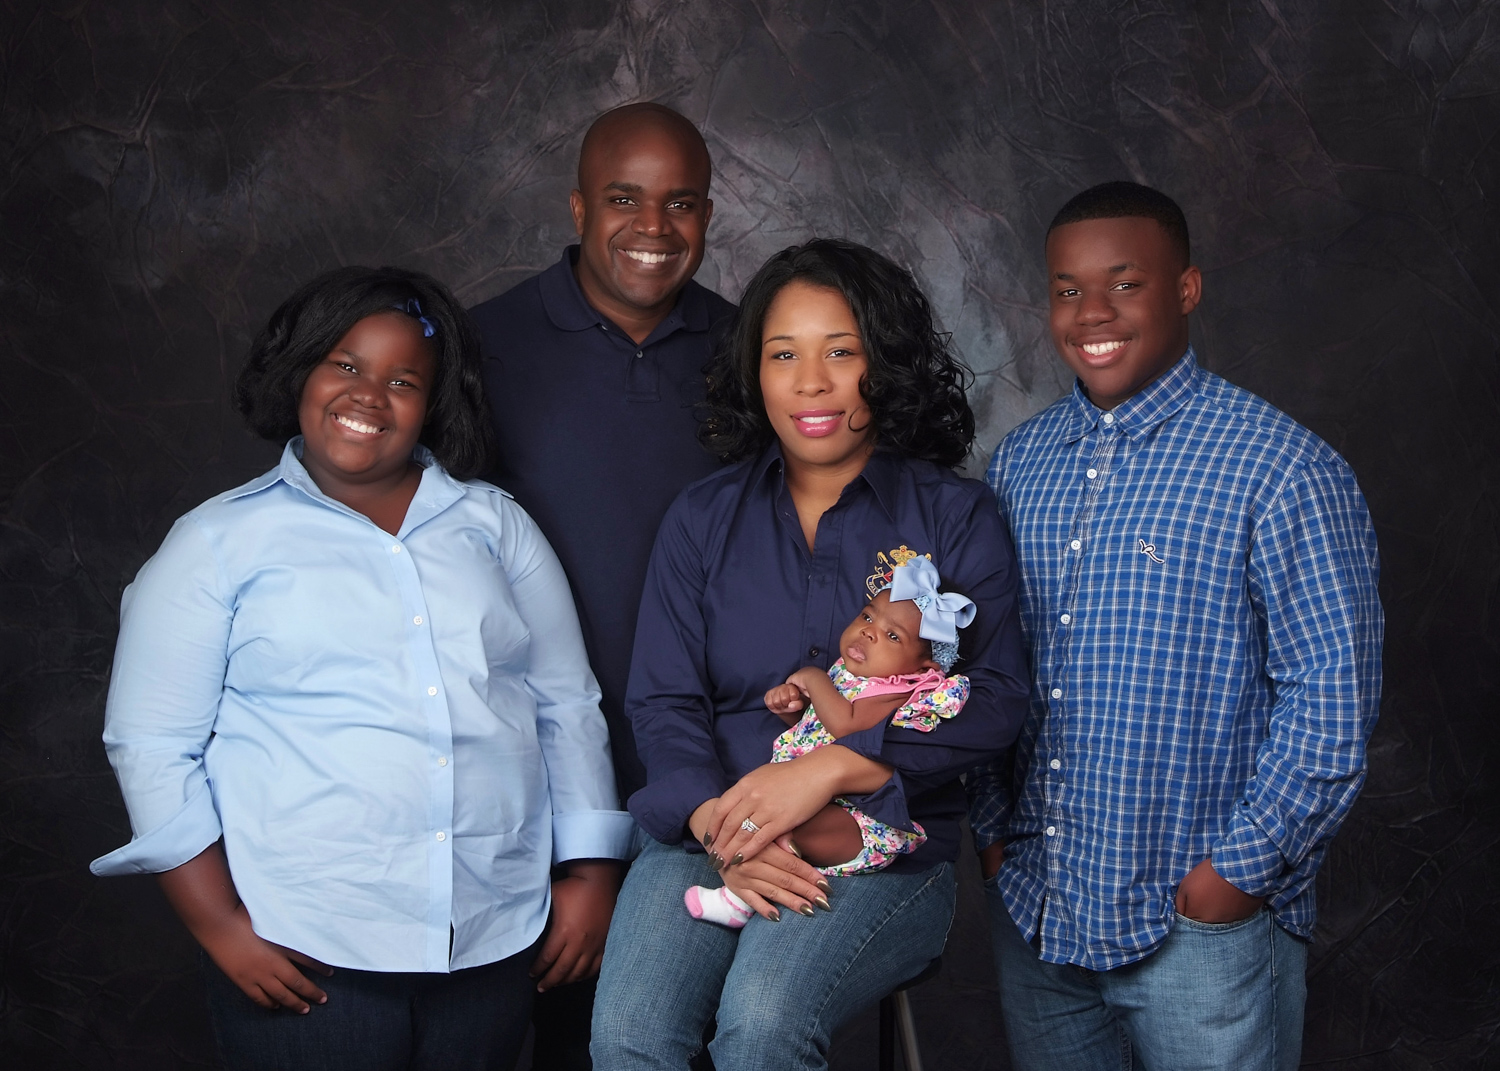 family_pictures_portraits_beaufort-7.jpg